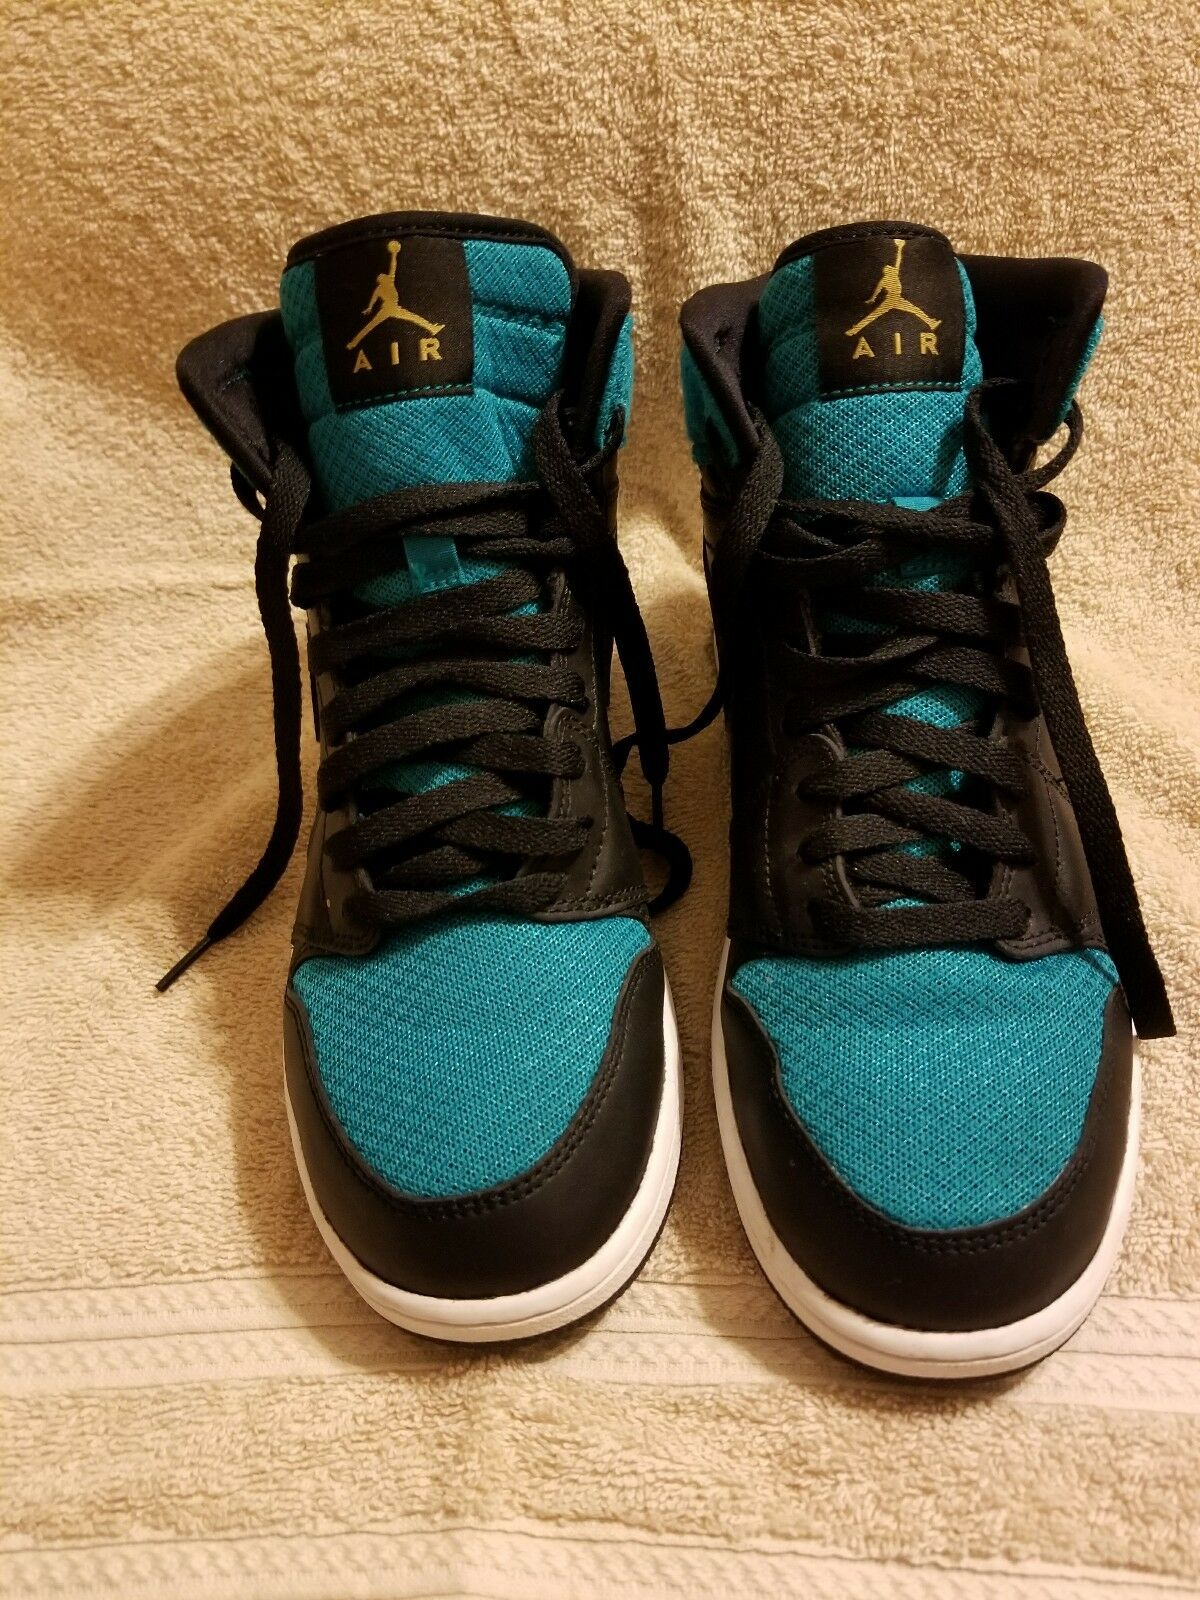 Jordan 1 Retro High GG Heiress The most popular shoes for men and women